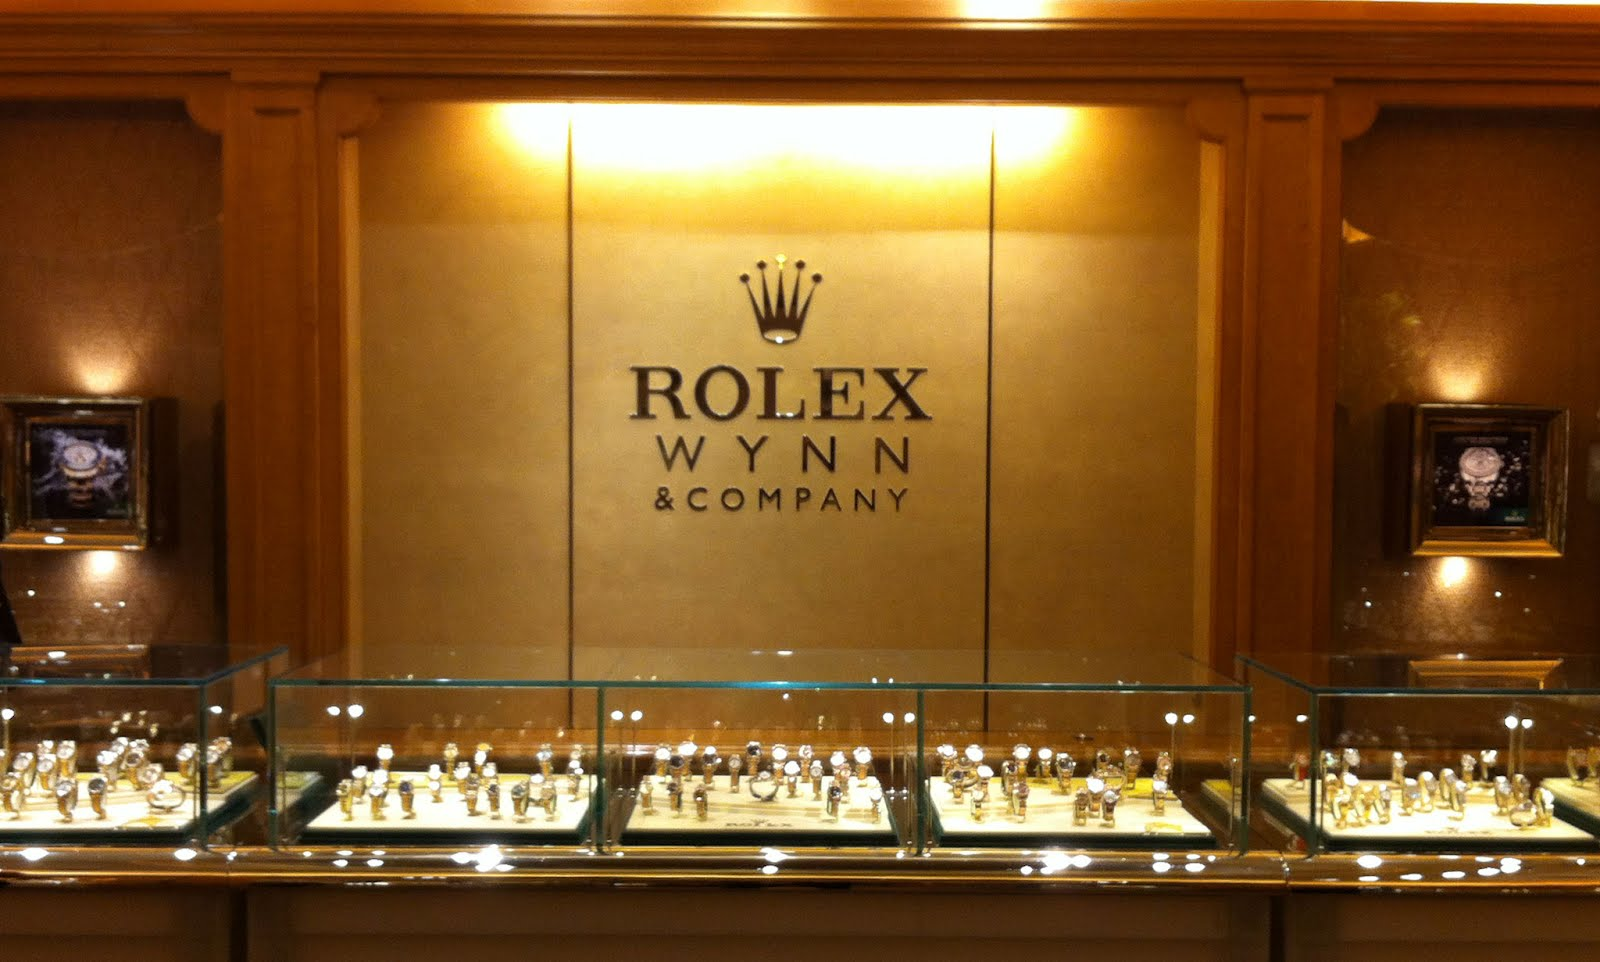 Wynn Rolex Store Las Vegas 1600962 231565 HD Wallpaper Res 1600x962